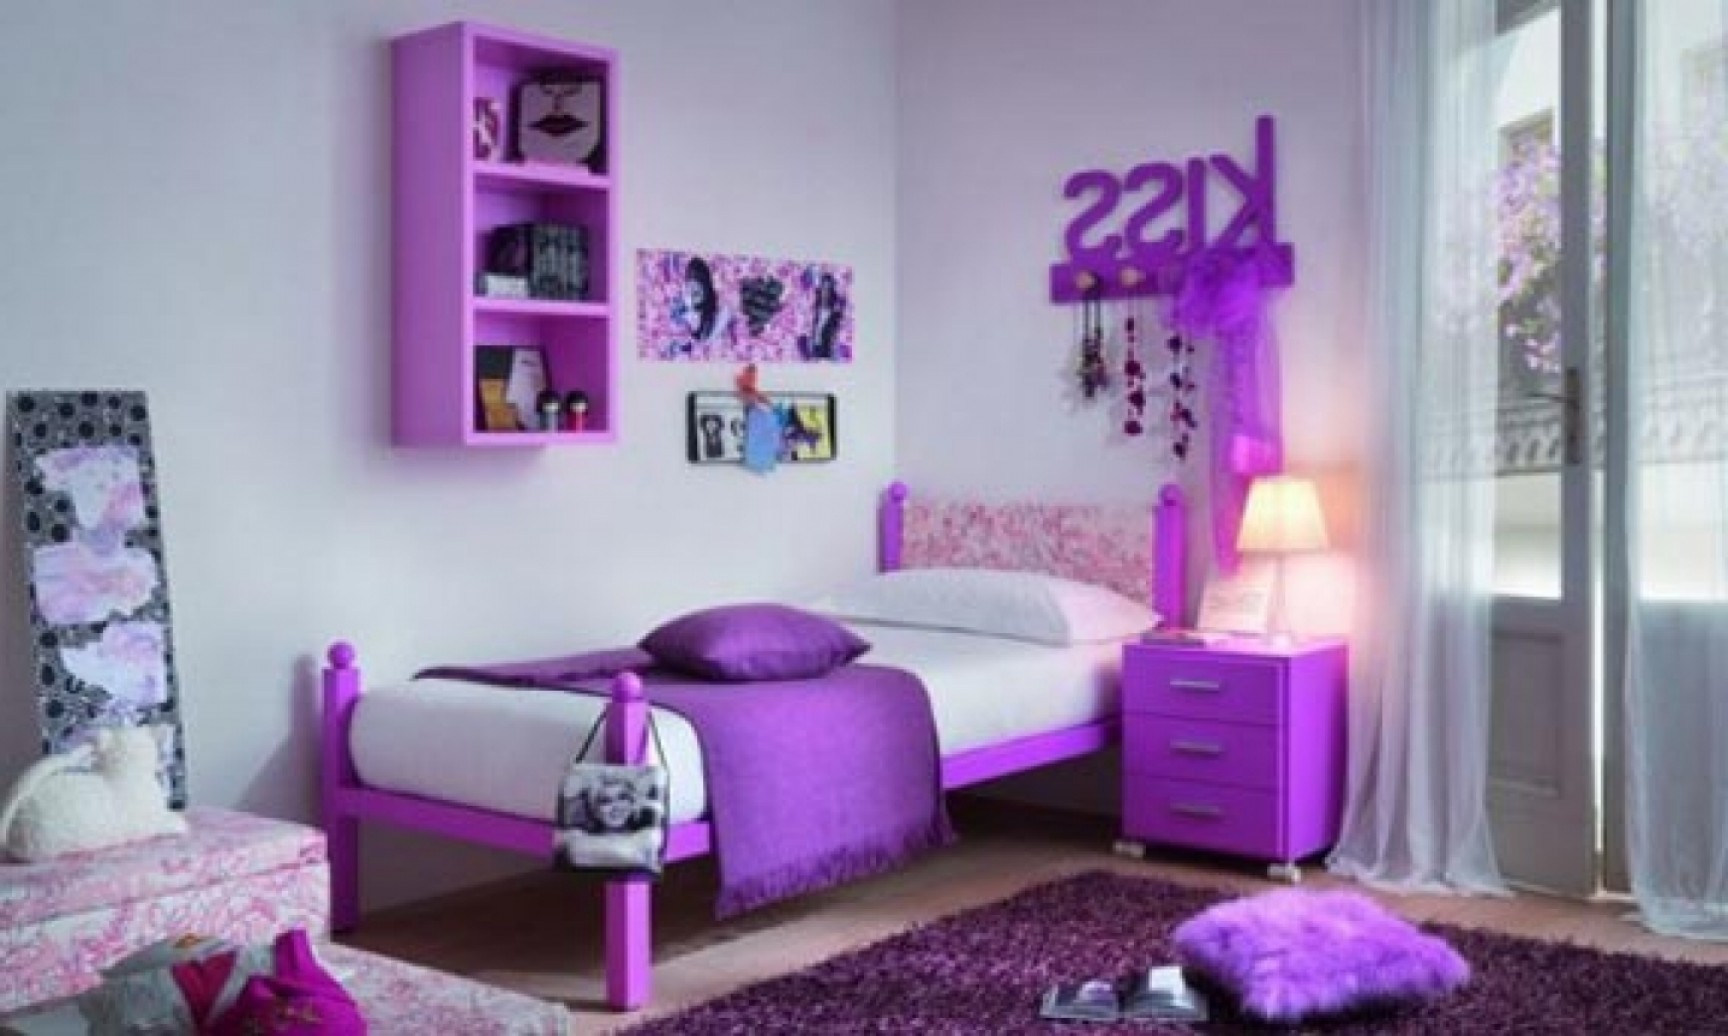 5 tips in small bedroom ideas for teenagers for Ideas for teen bedroom